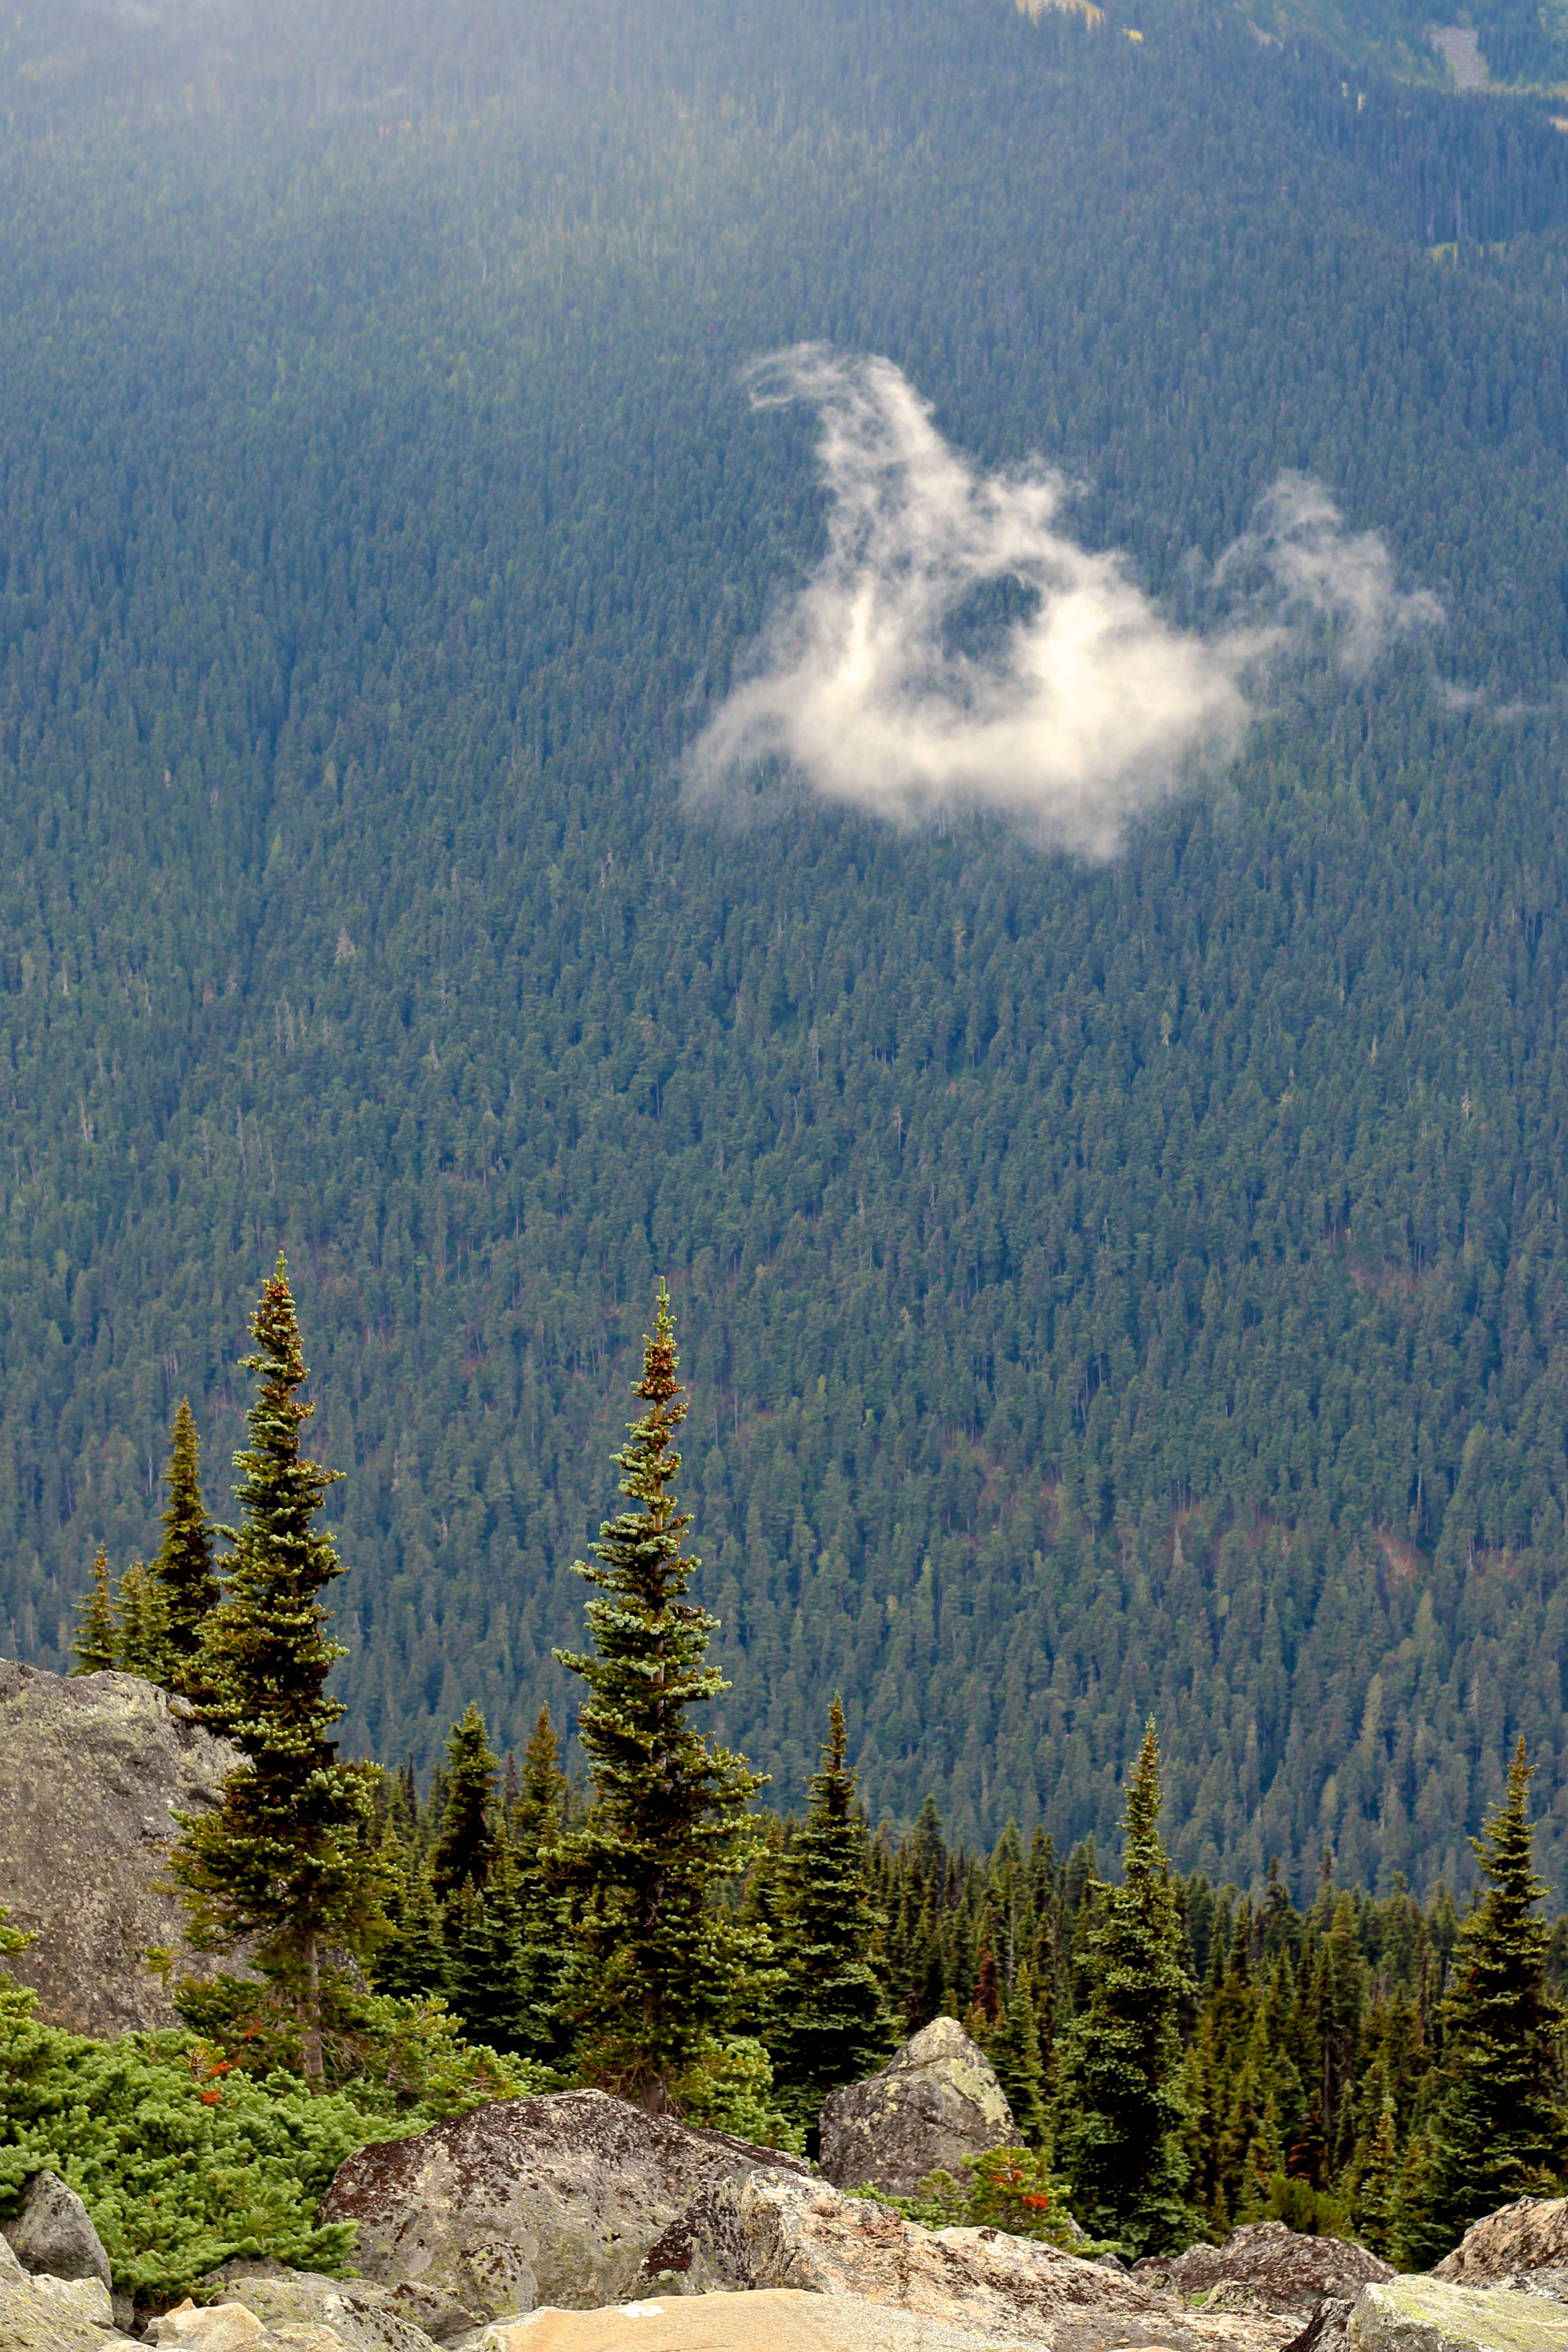 Mountain landscape with pine trees and cloud in Whistler, British Columbia